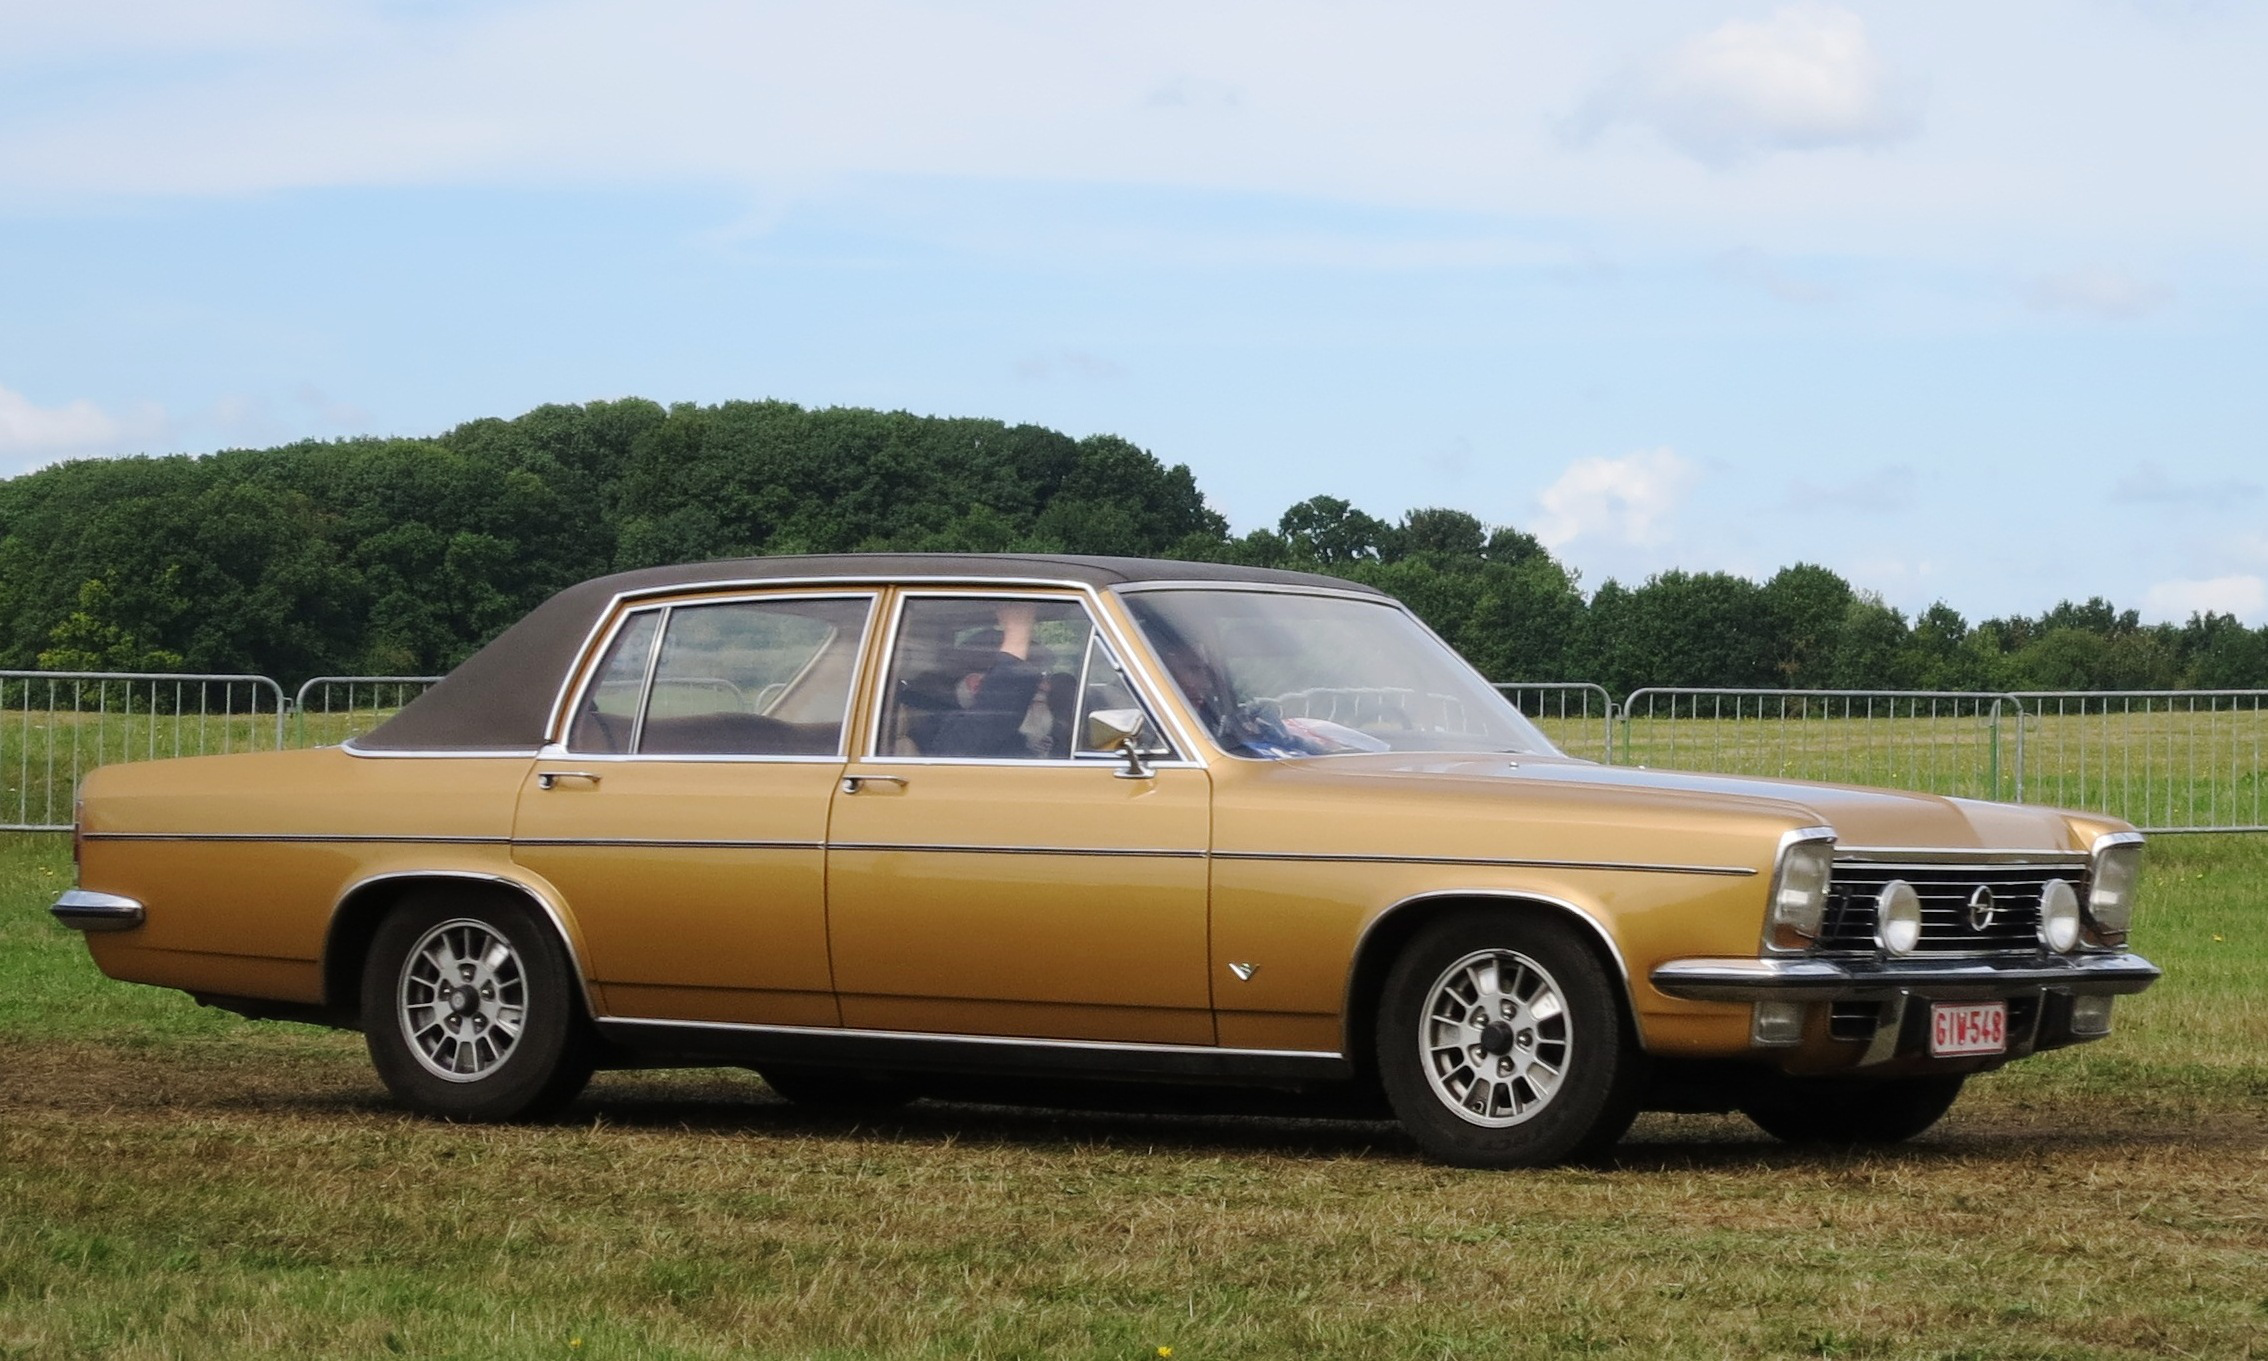 Build Your Car >> File:Opel Diplomat V8 ca 1975 5354cc in profile.JPG - Wikimedia Commons